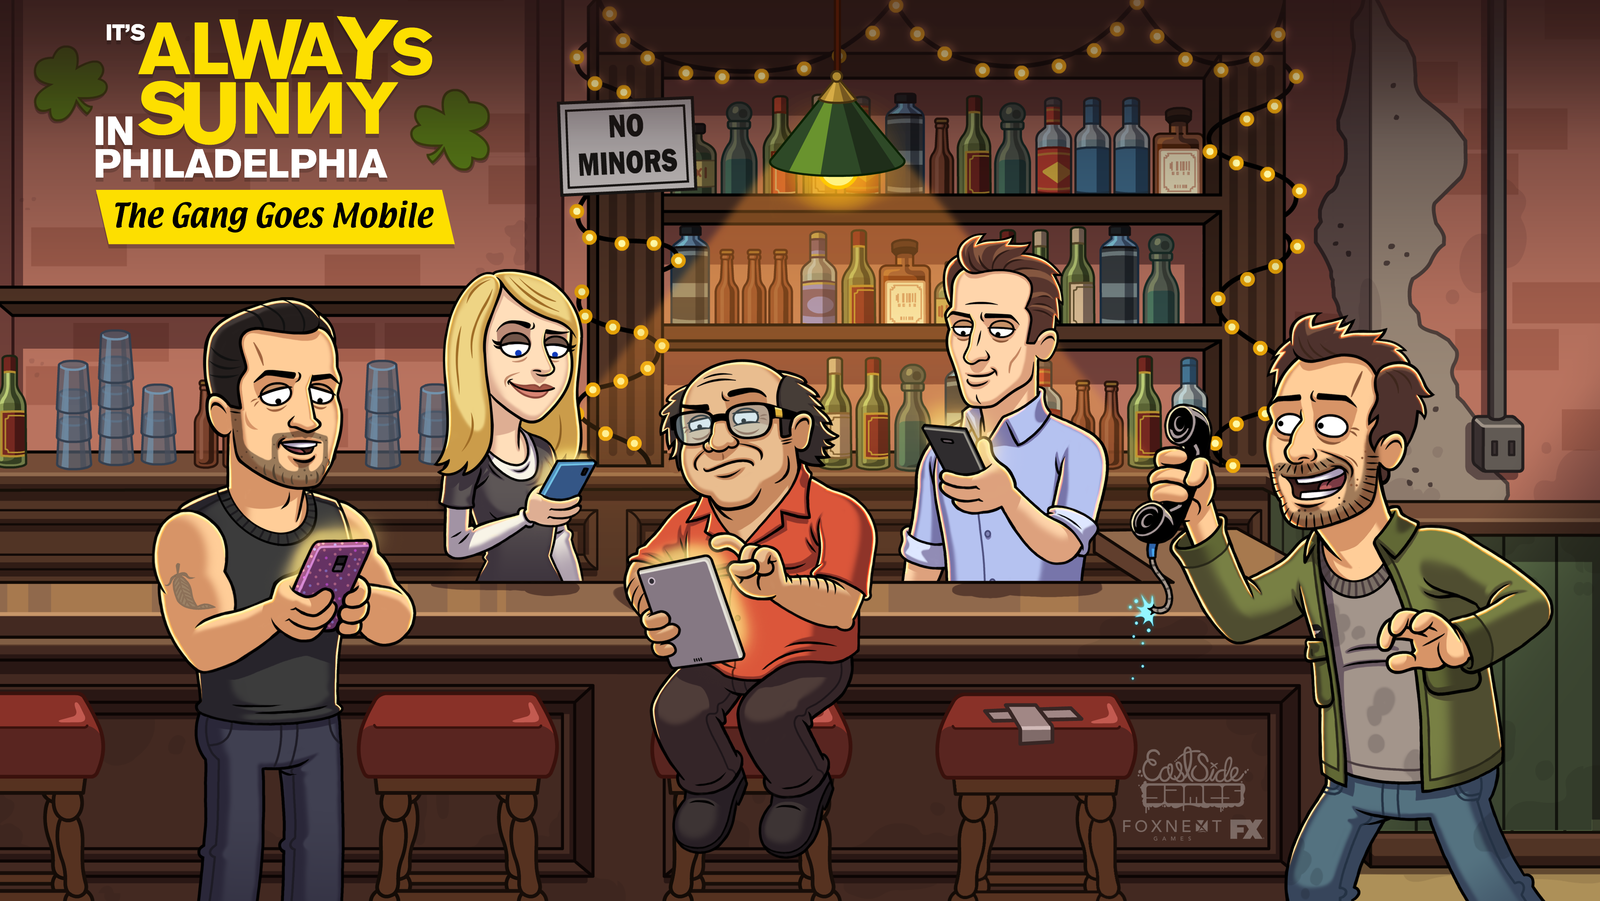 It's Always Sunny in Philadelphia The Gang Goes Mobile - Description:Tap your way through the worst bar in Philadelphia! Team up with The Gang from It's Always Sunny -- Mac, Dennis, Charlie, Dee, and Frank -- the hilariously dysfunctional, self-obsessed group of friends, and start schemes to launder Frank's dirty money.Roles:Quality Assurance AnalystAssistant Writer